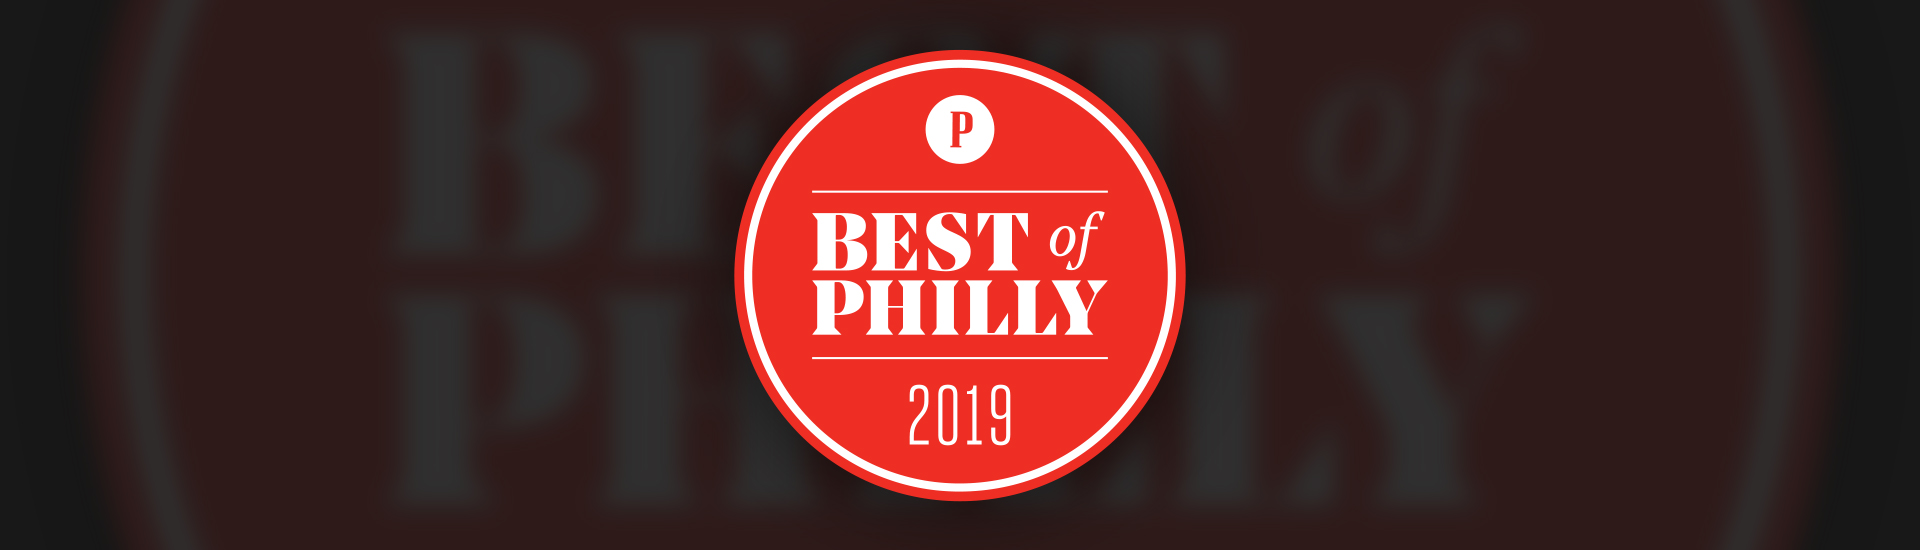 """World Wide Stereo Recognized as """"Best of Philly 2019"""""""